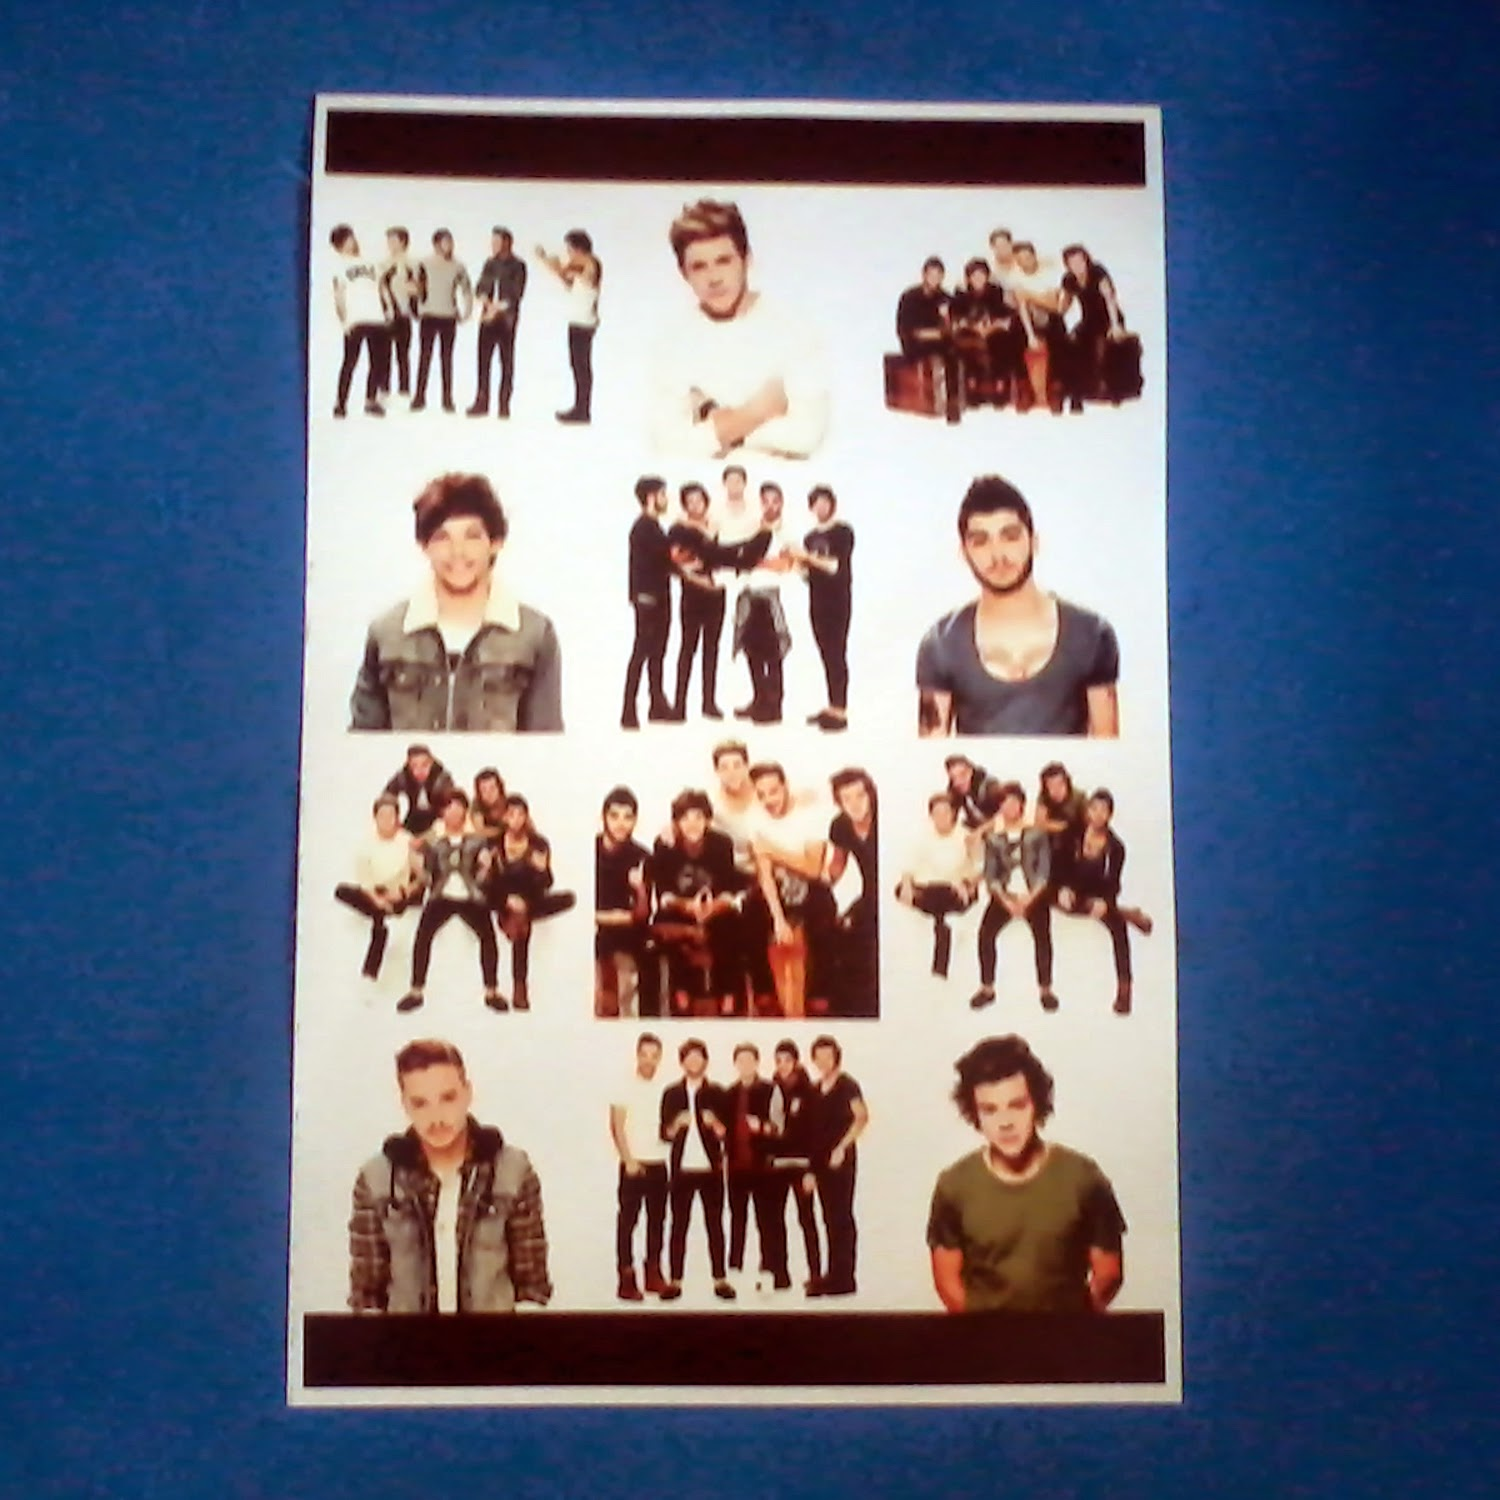 jual Poster A3 Boyband One Direction Murah